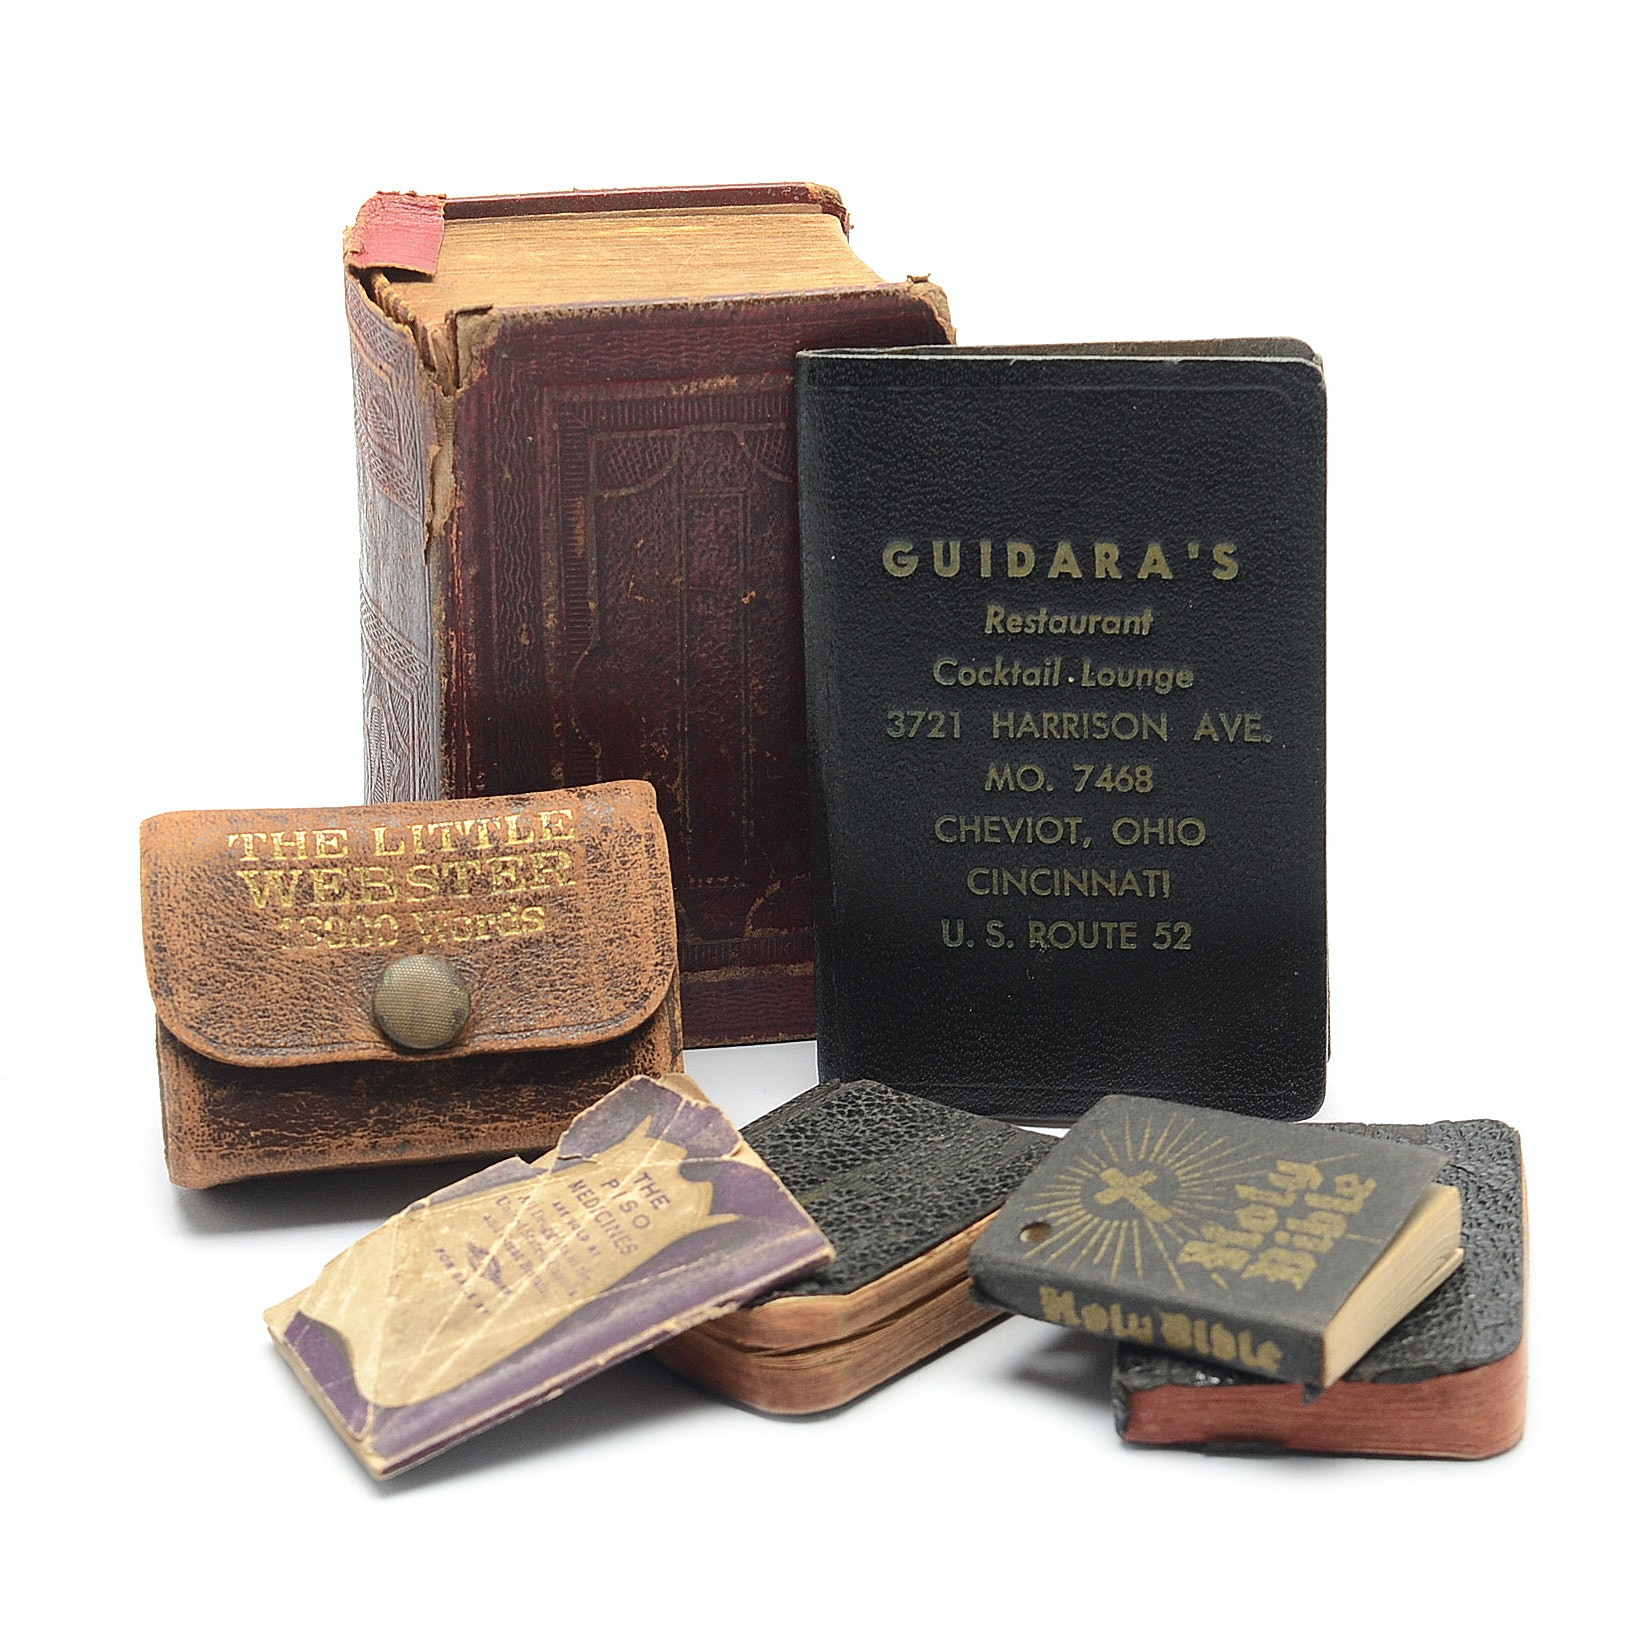 Grouping of Miniature Books, Including Hymnal, Almanac, Dictionary, and Prayer